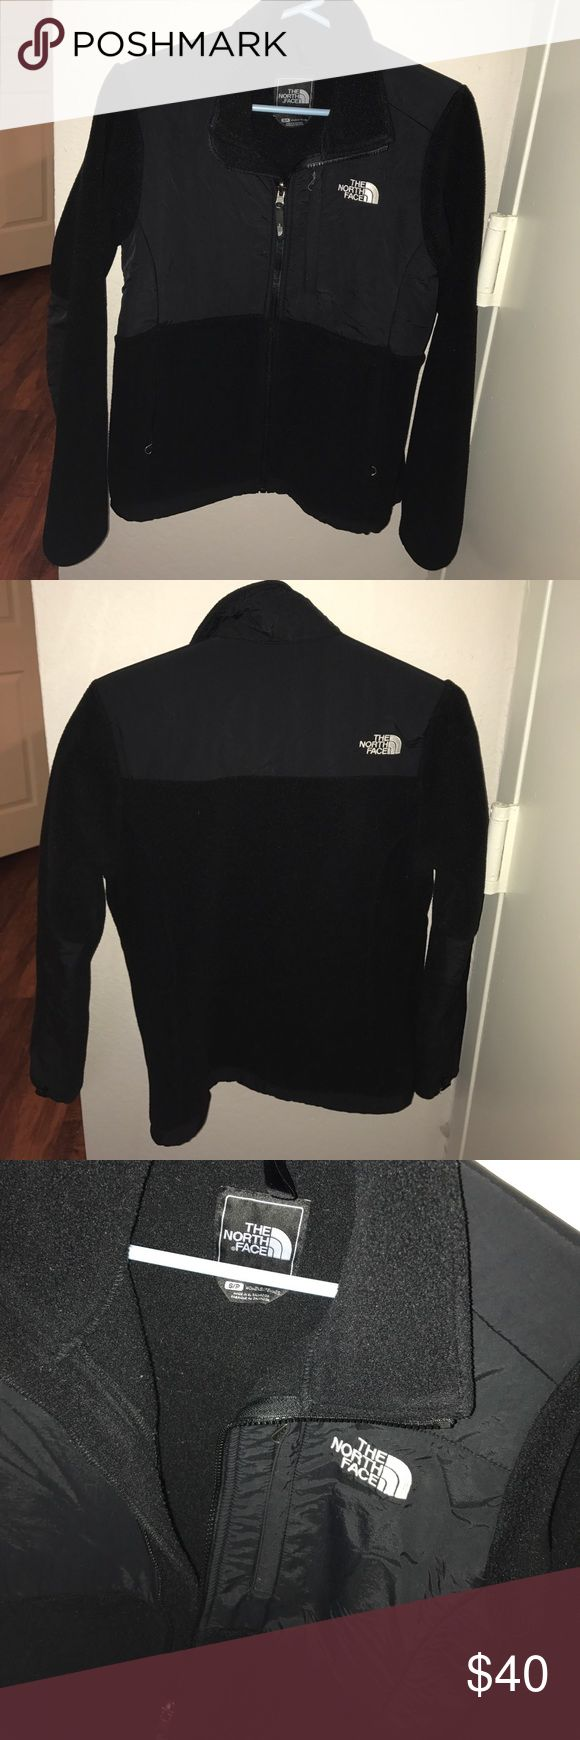 Women's North Face Jacket Women's North face fleece sweater/ jacket. Size women's small. Some west but overall good condition. Style is Denali. The North Face Jackets & Coats